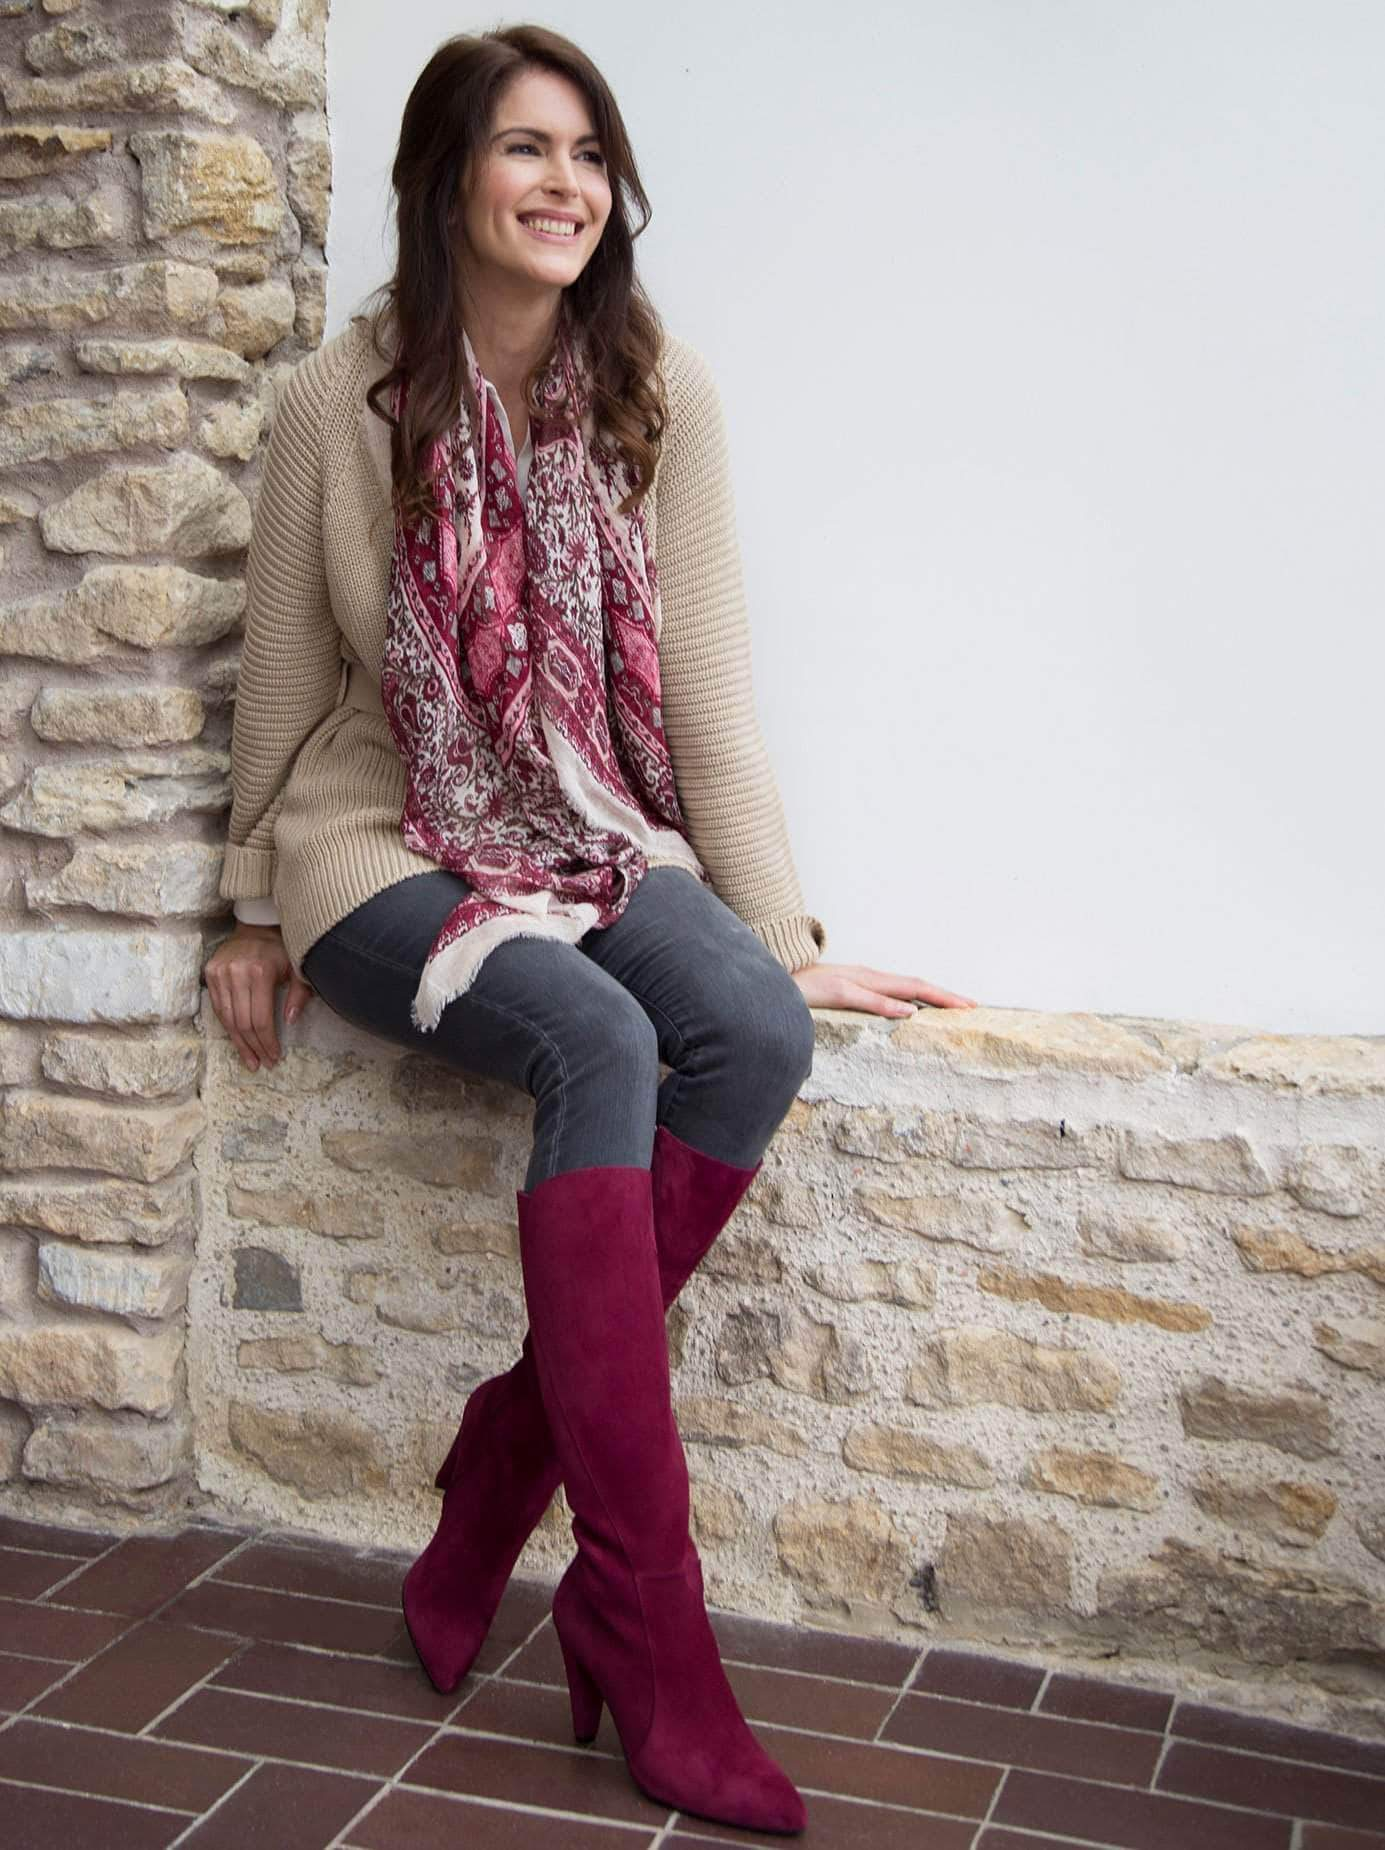 This chic knee high has a curved folded seam detail on the side of the boot which flatters and elongates the leg.